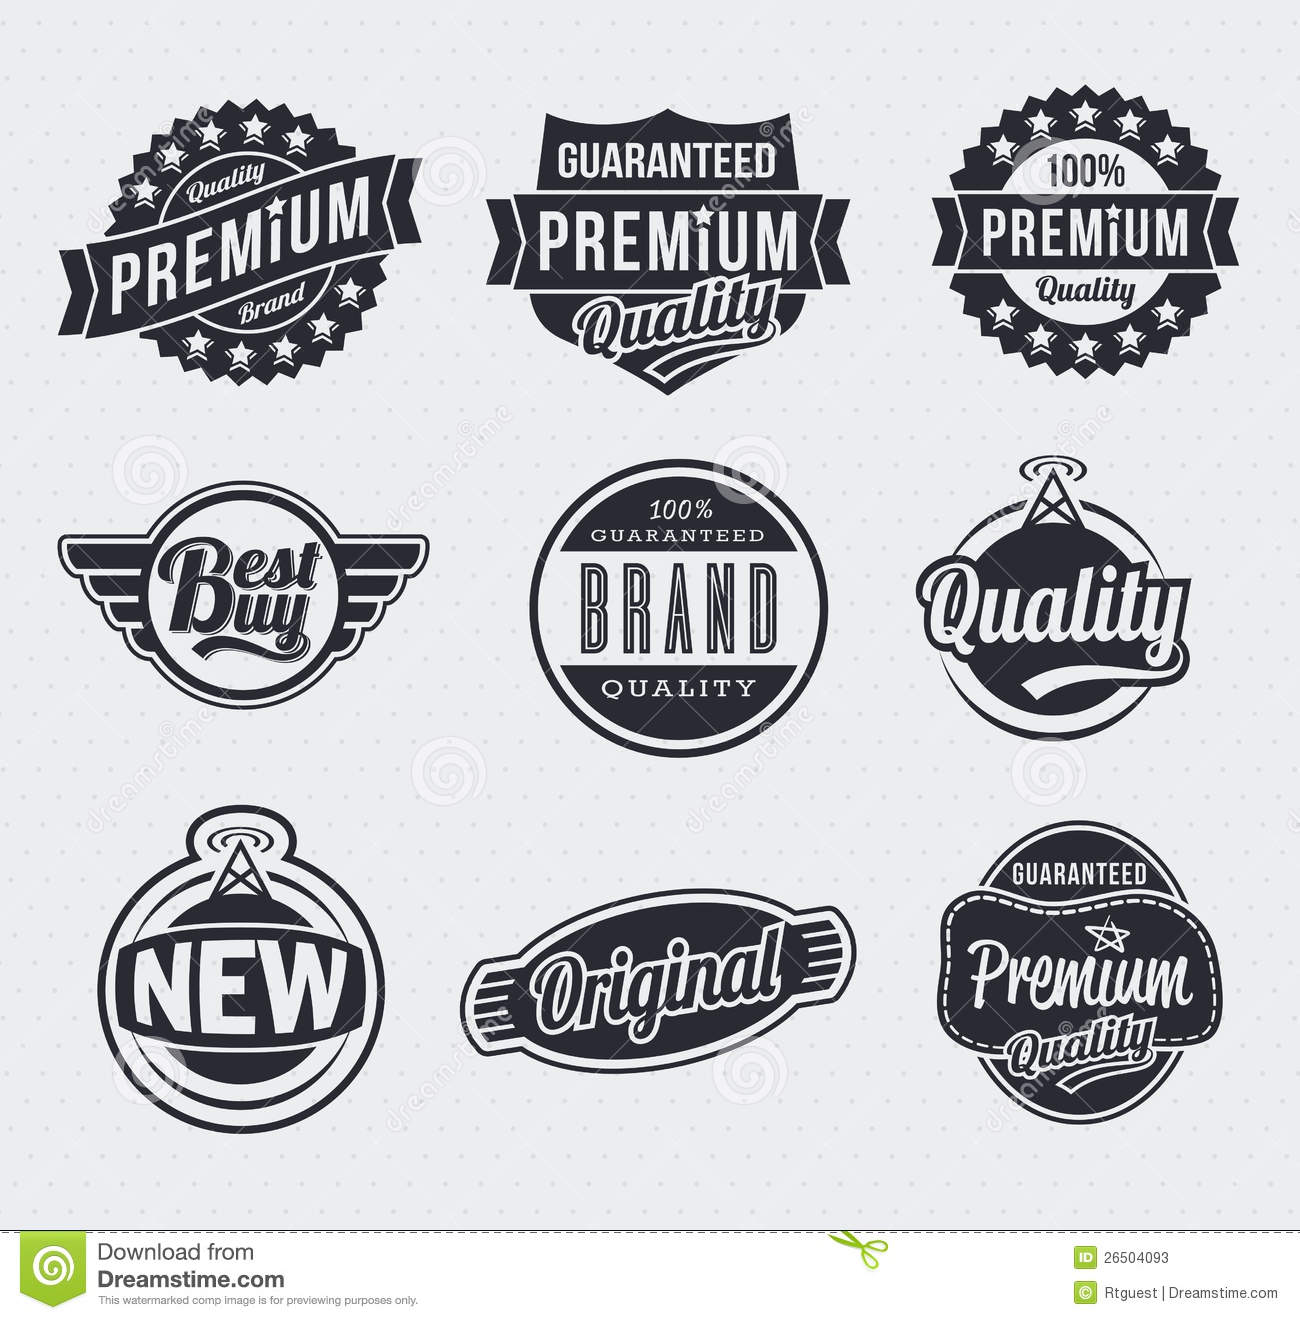 Retro Vintage Vector Labels Stock Photos - Image: 26504093